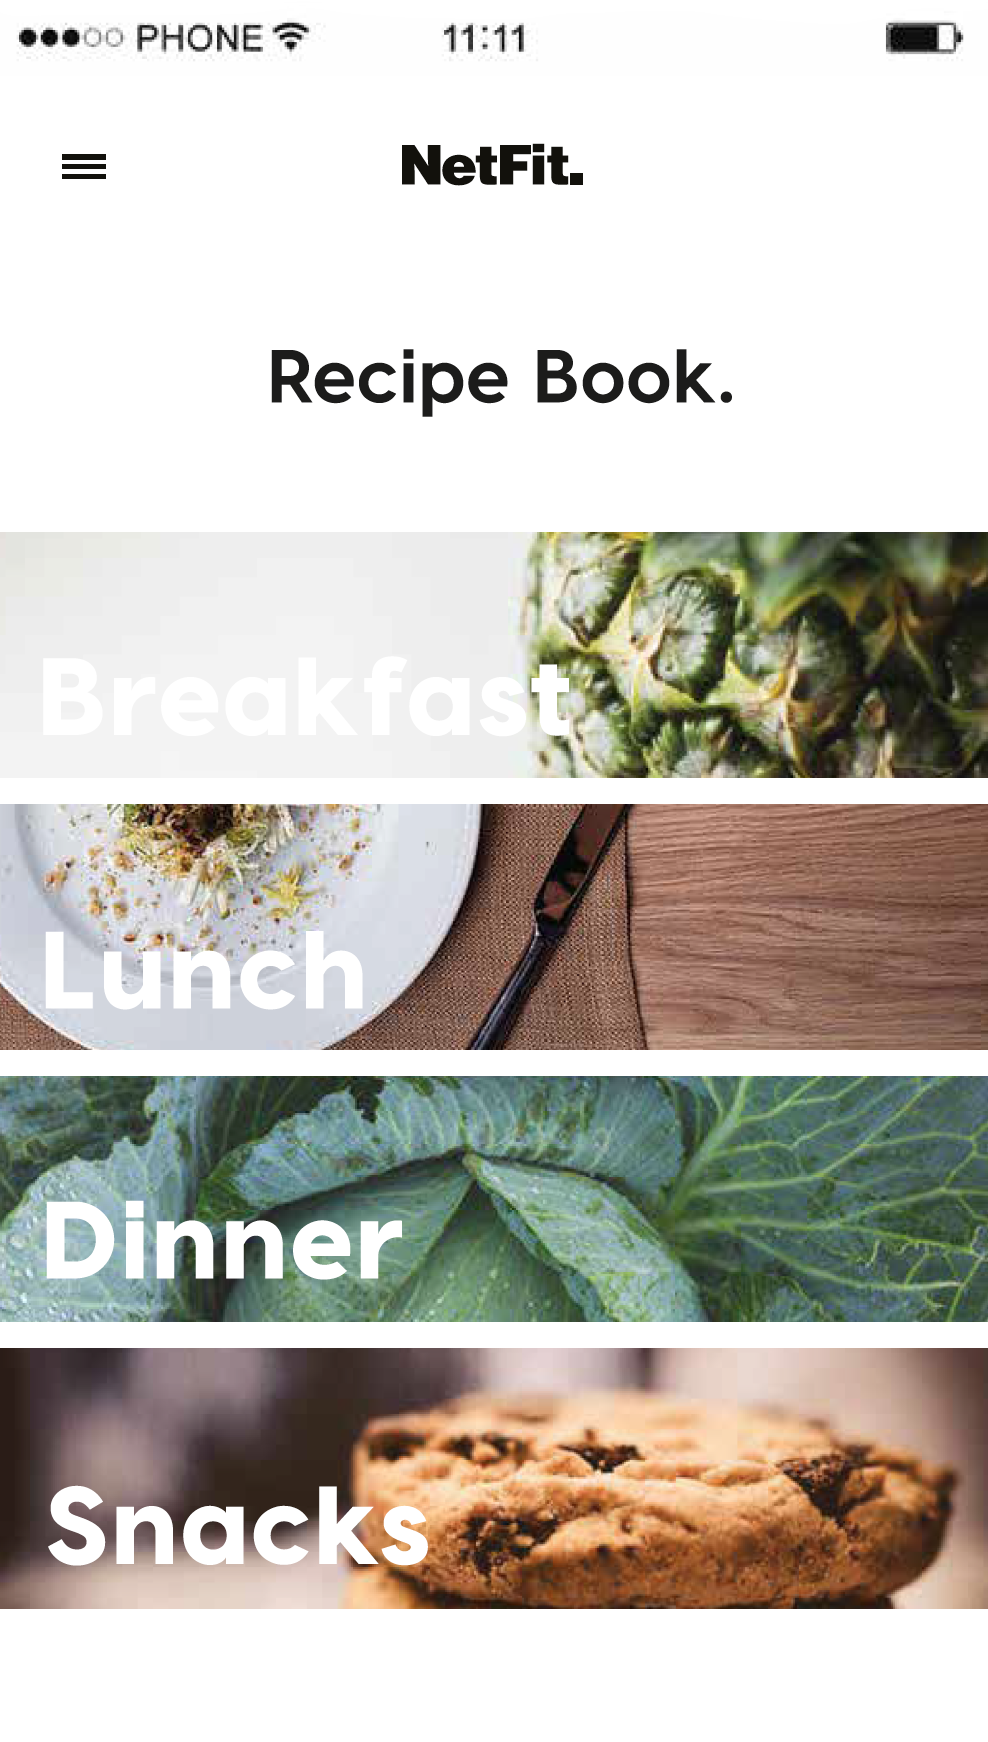 2. Recipe book.png